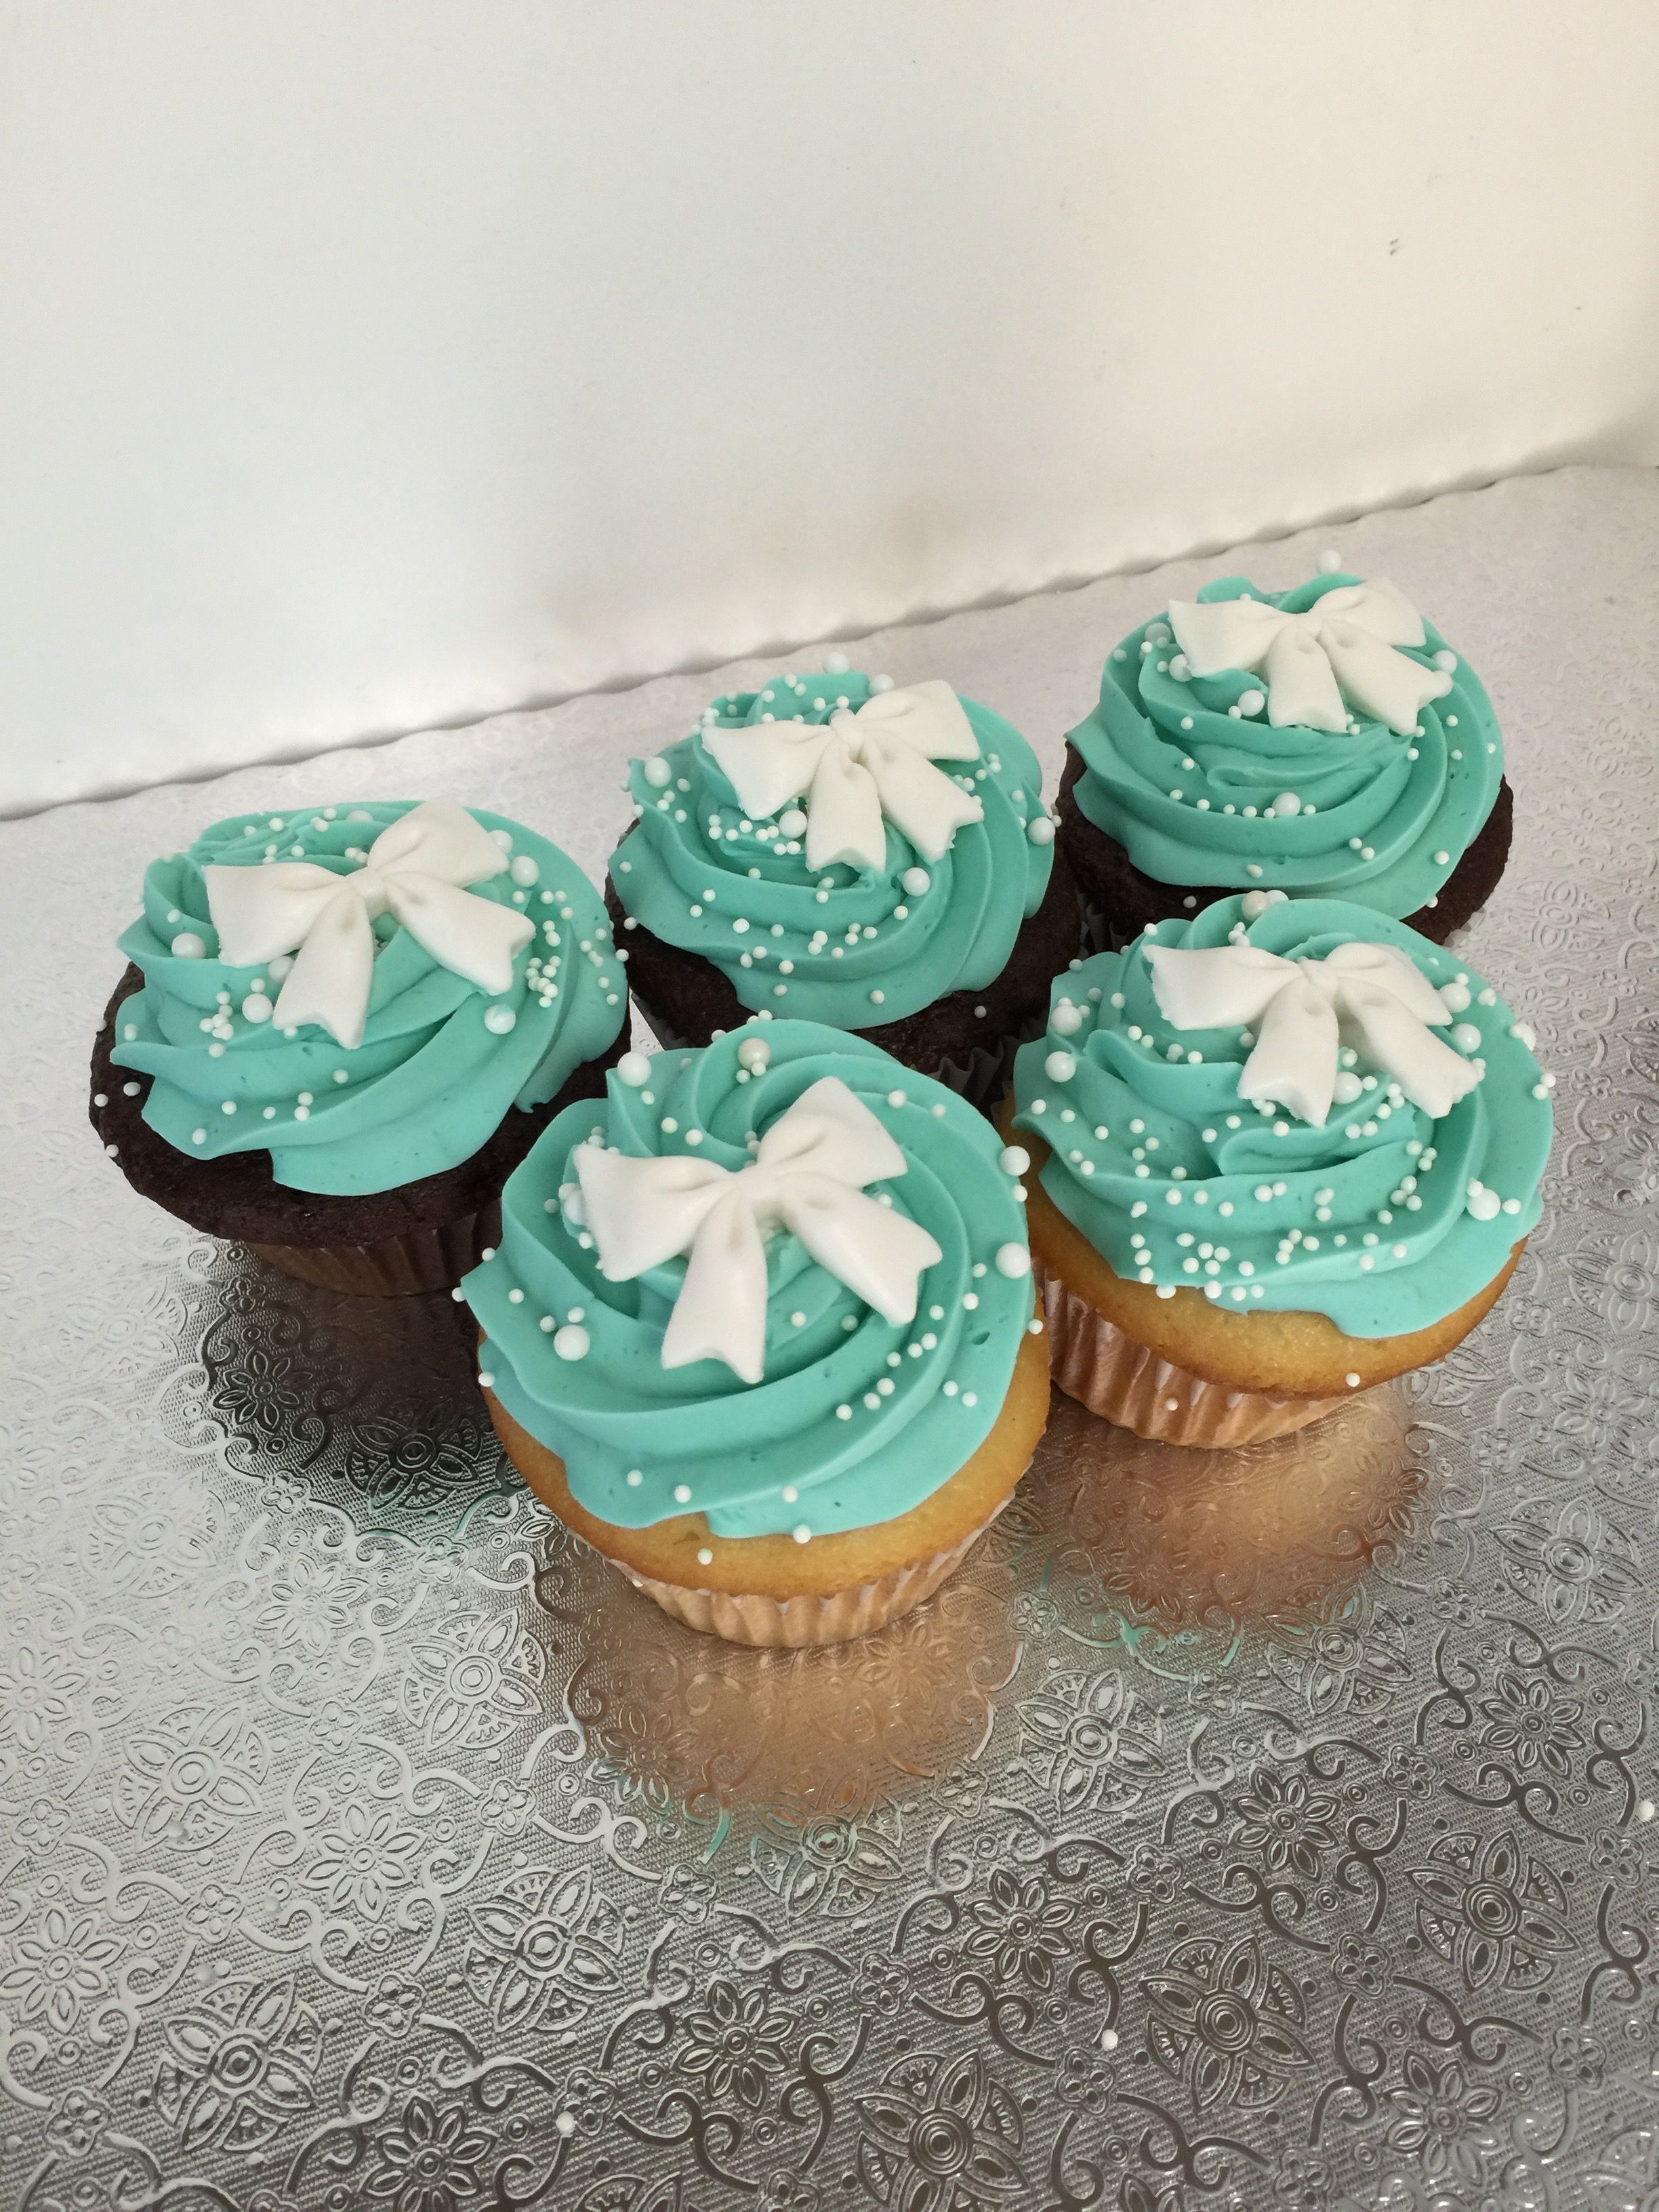 664953a1a3c tiffany & co cupcakes | Cupcakes | Cupcakes, Engagement party ...